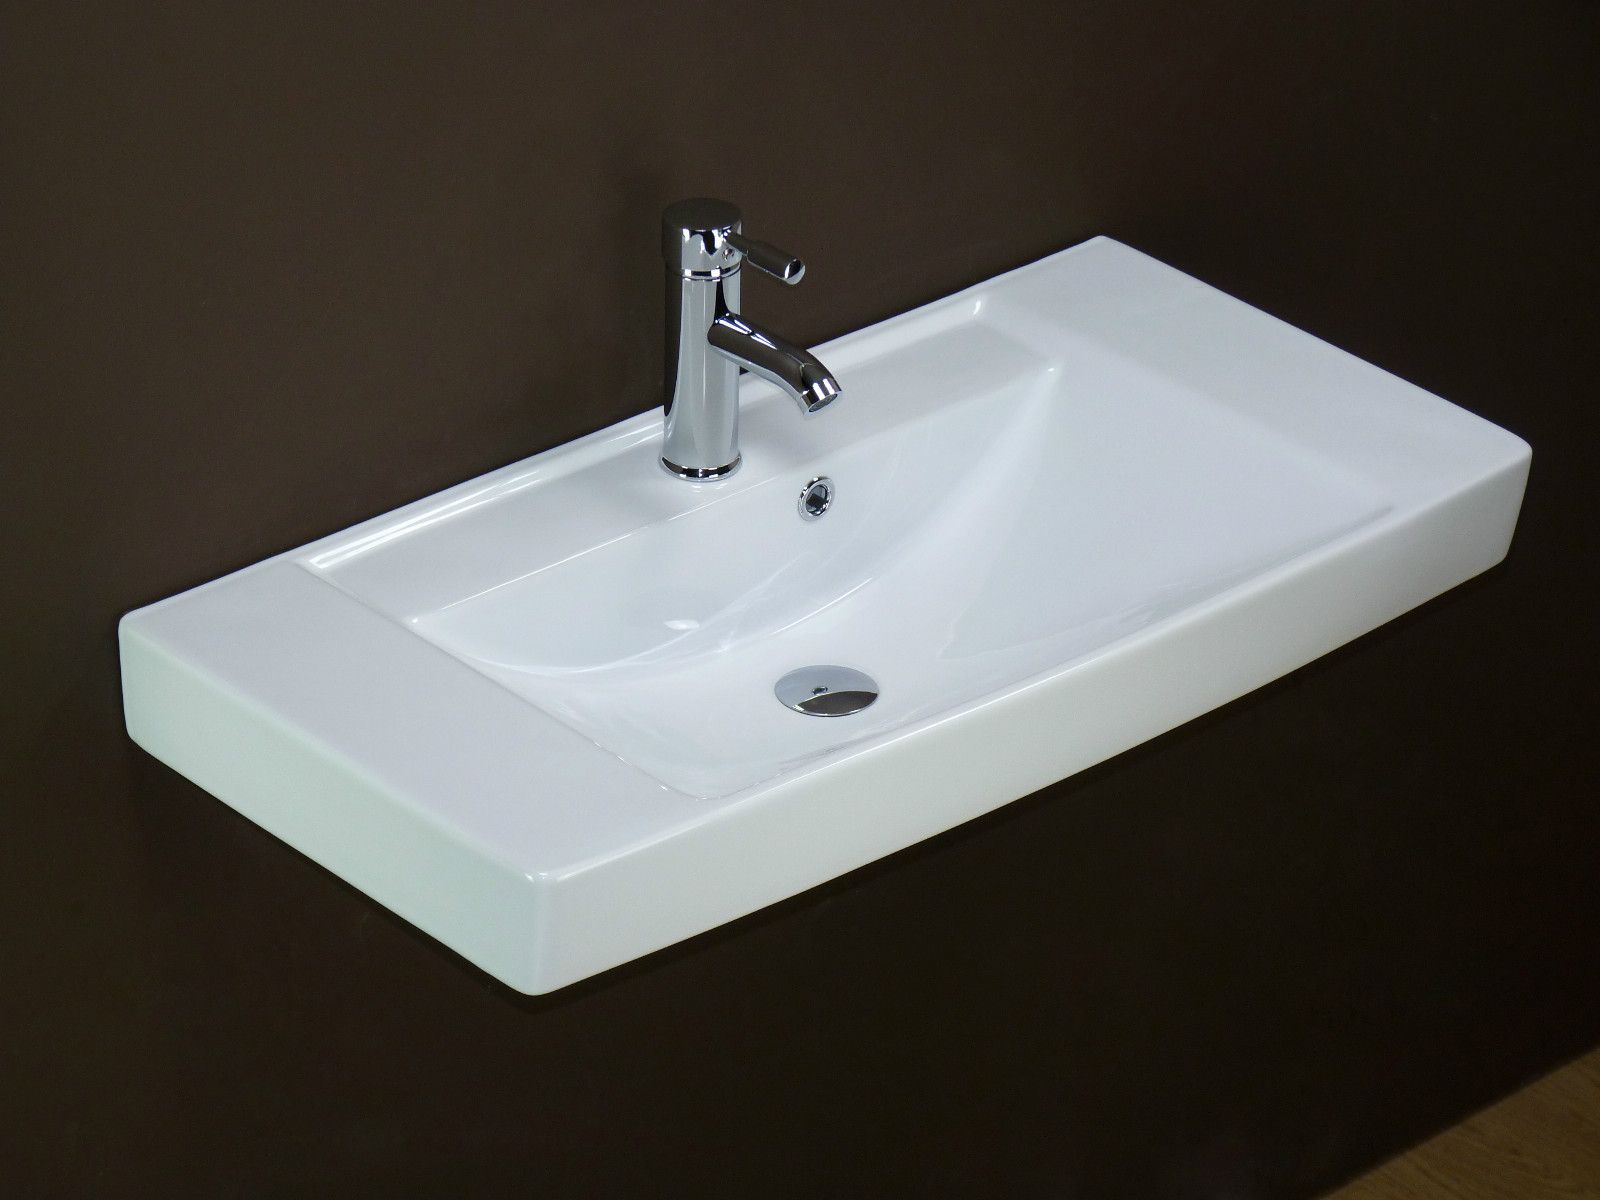 Countertop Sinks Google Search Badezimmer Waschbecken Ikea Badezimmer Ikea Waschbecken